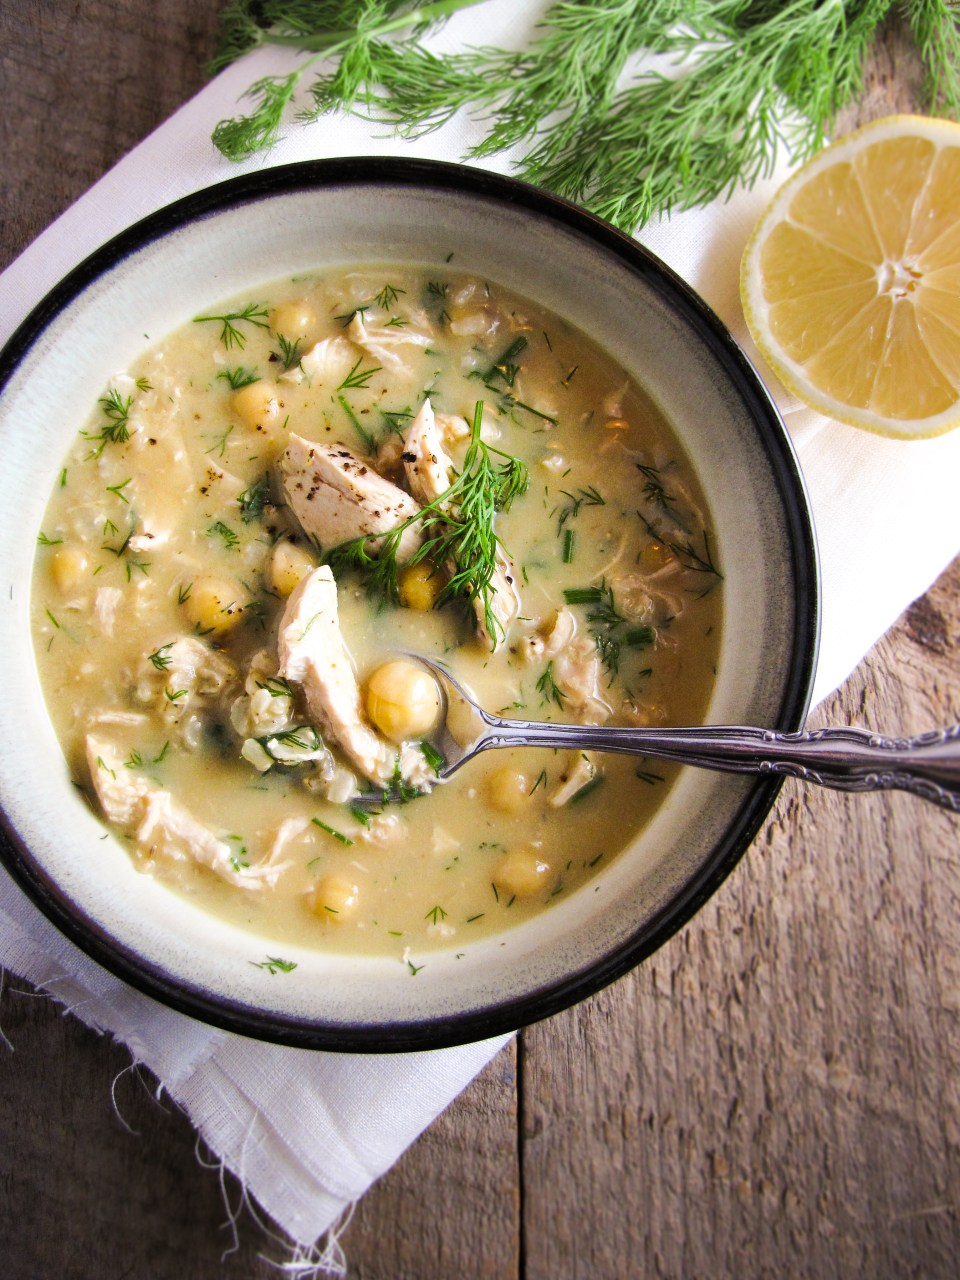 Healthy Winter Recipes - Greek Egg and Lemon Soup with Brown Rice, Chicken, and Chickpeas